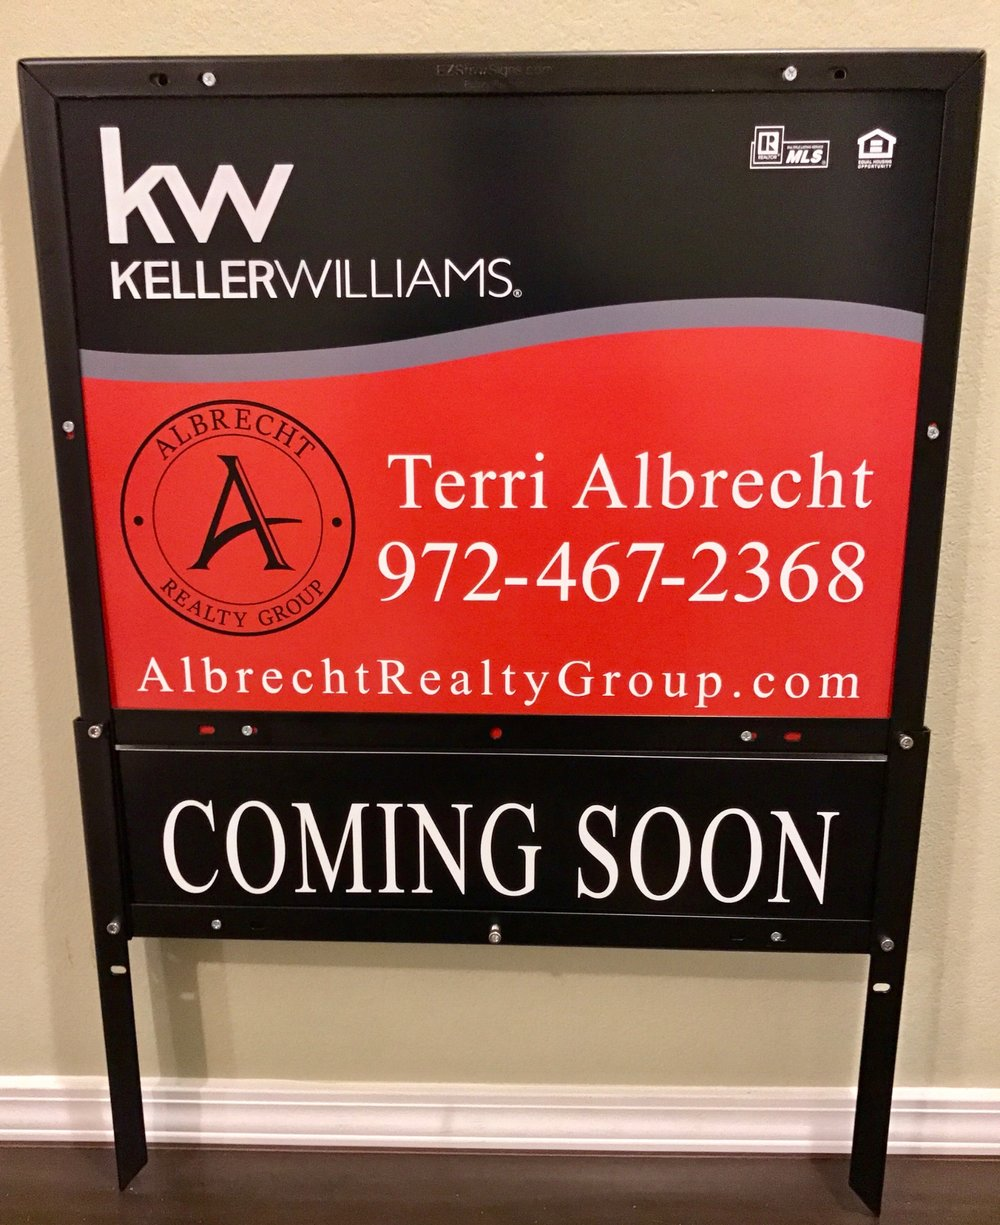 Keller Williams Realty 18%22 x 24%22 Panel & 6%22 x 24%22 Custom Aluminum Rider & EZ Frame.jpeg